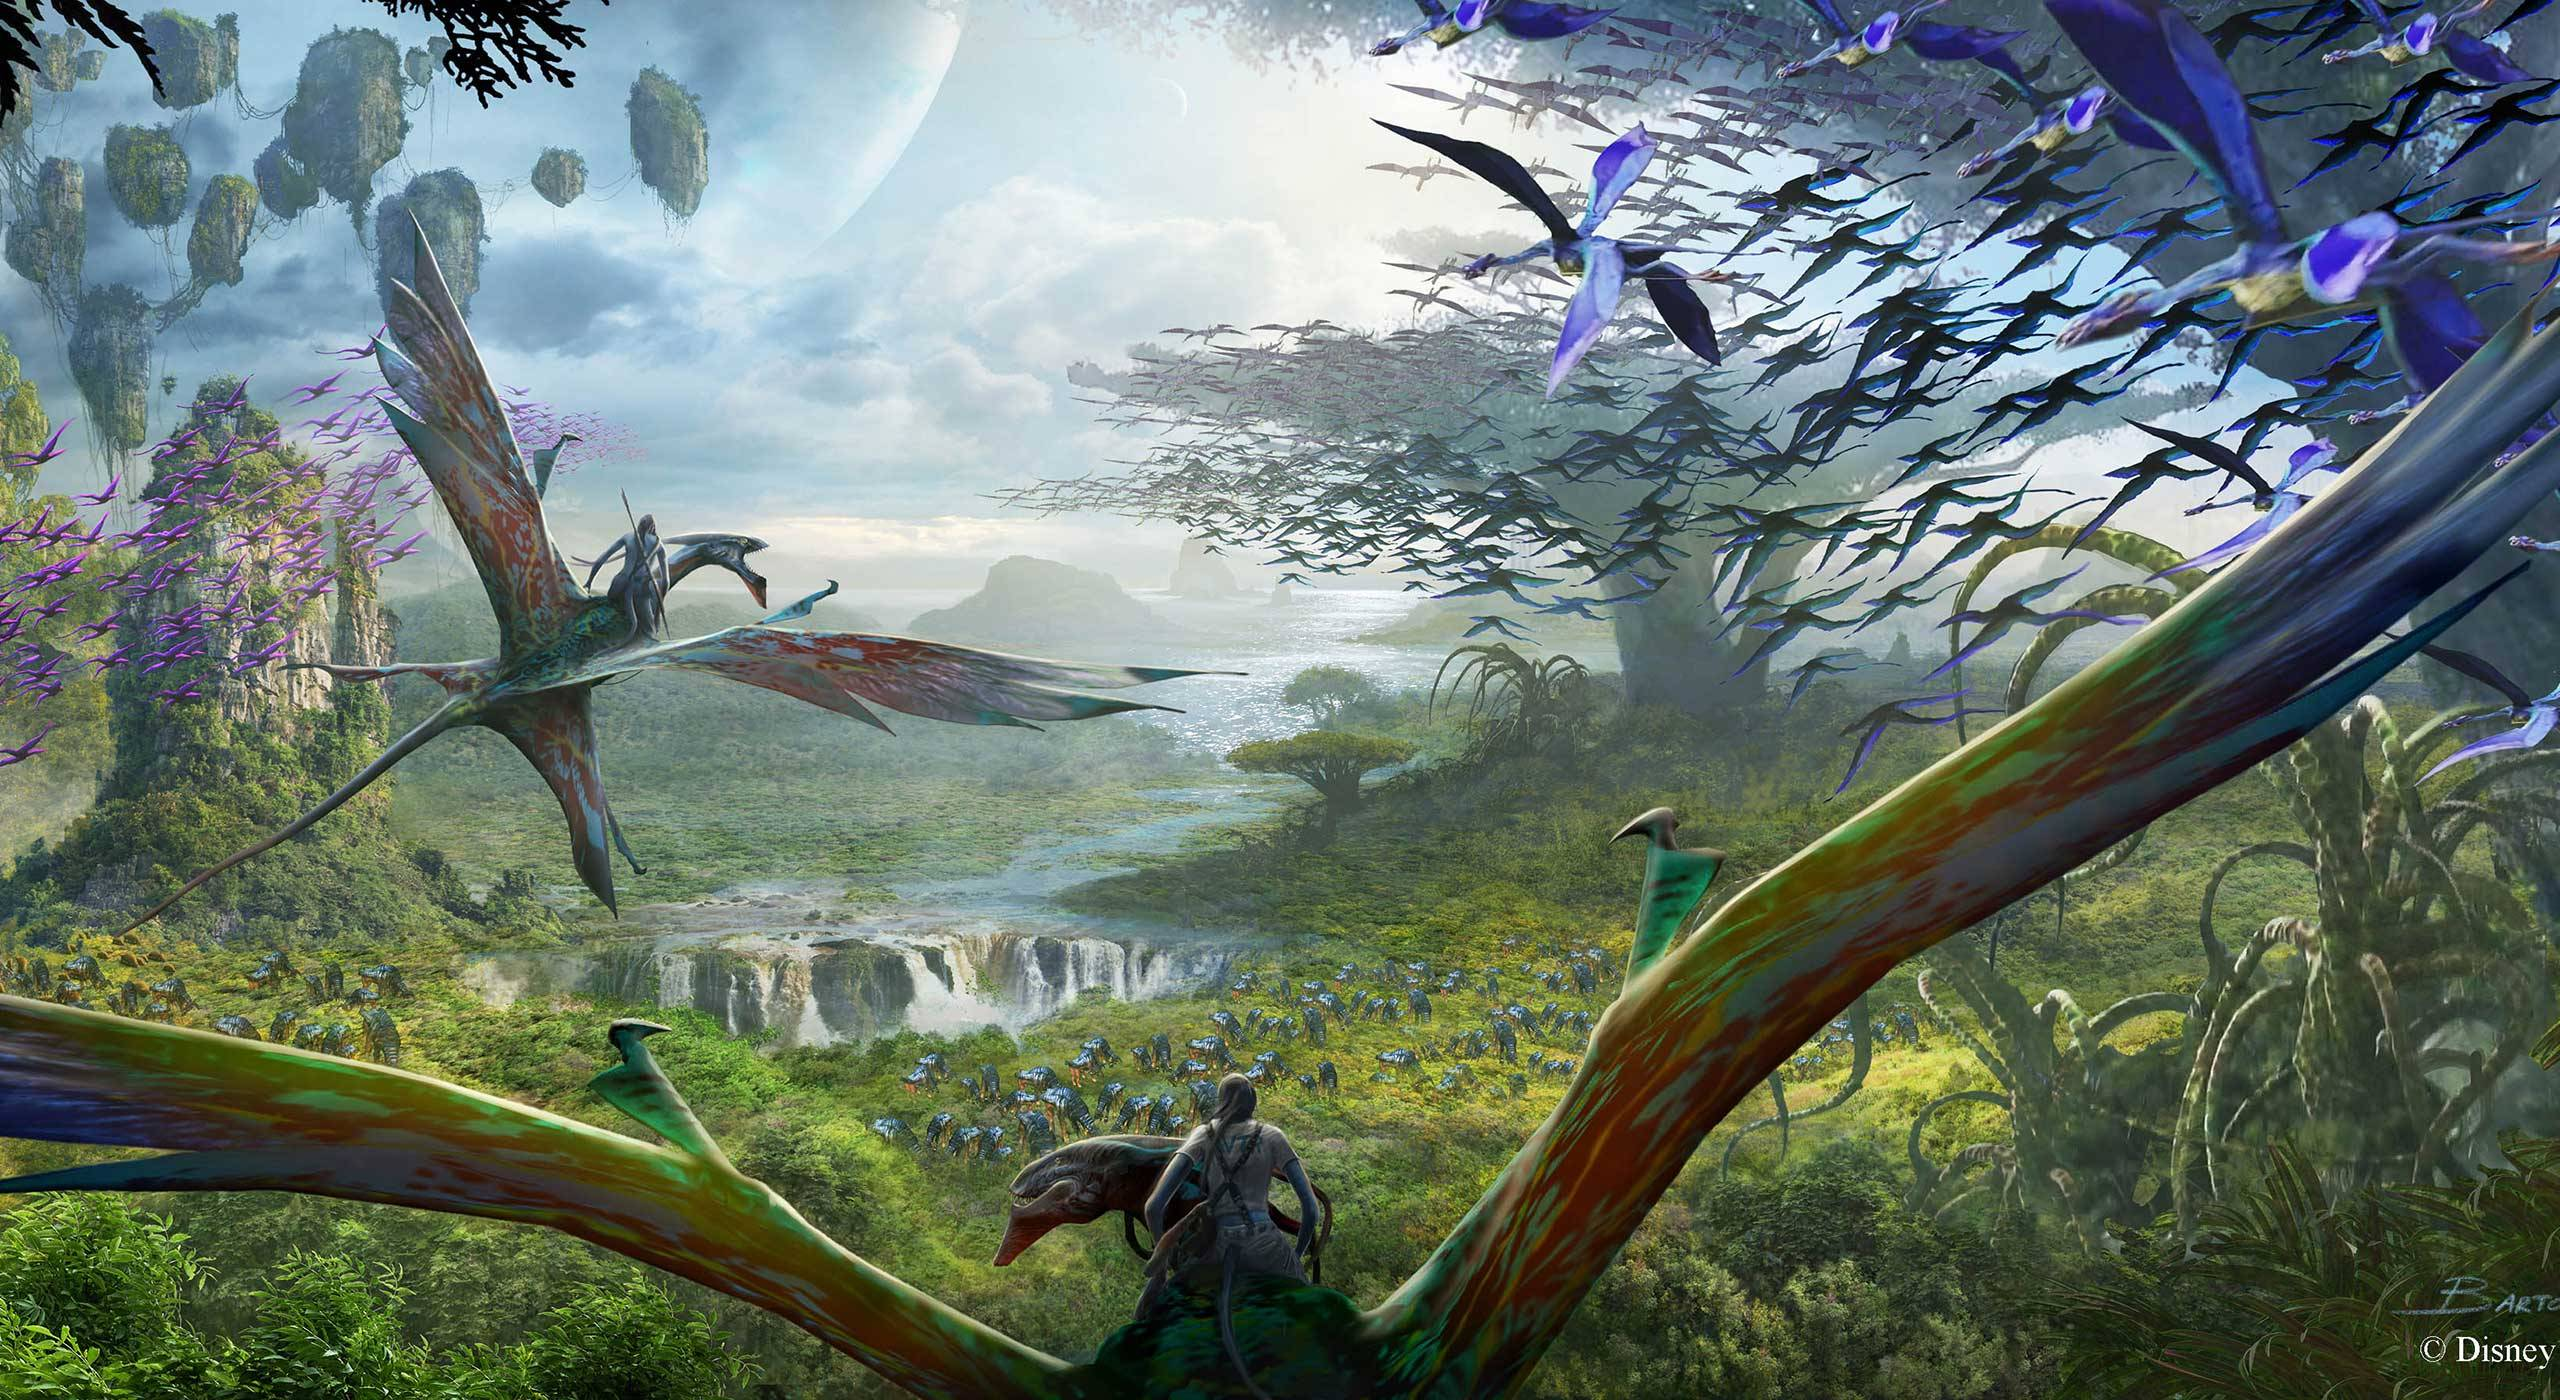 AVATAR Overview